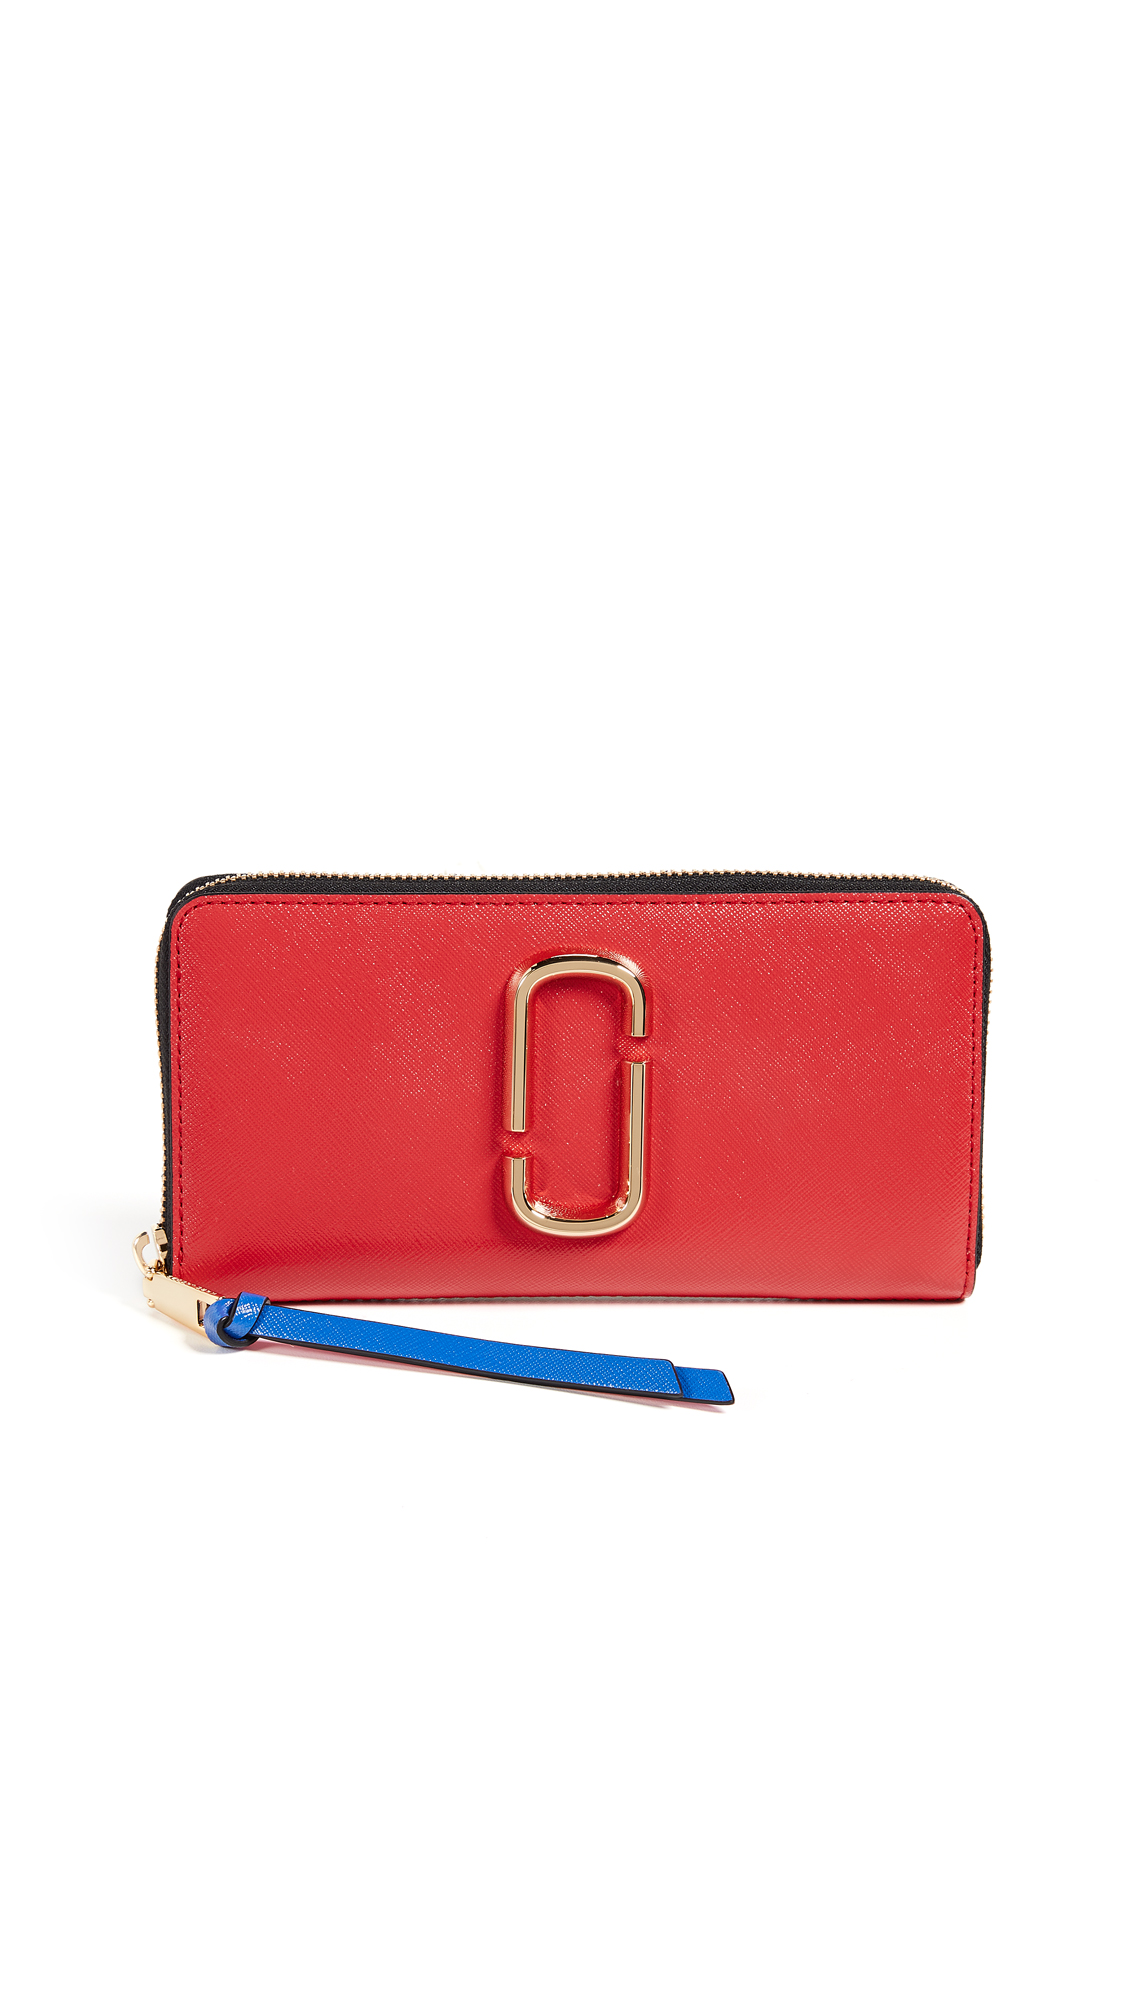 Marc Jacobs Snapshot Standard Continental Wallet - Poppy Red Multi